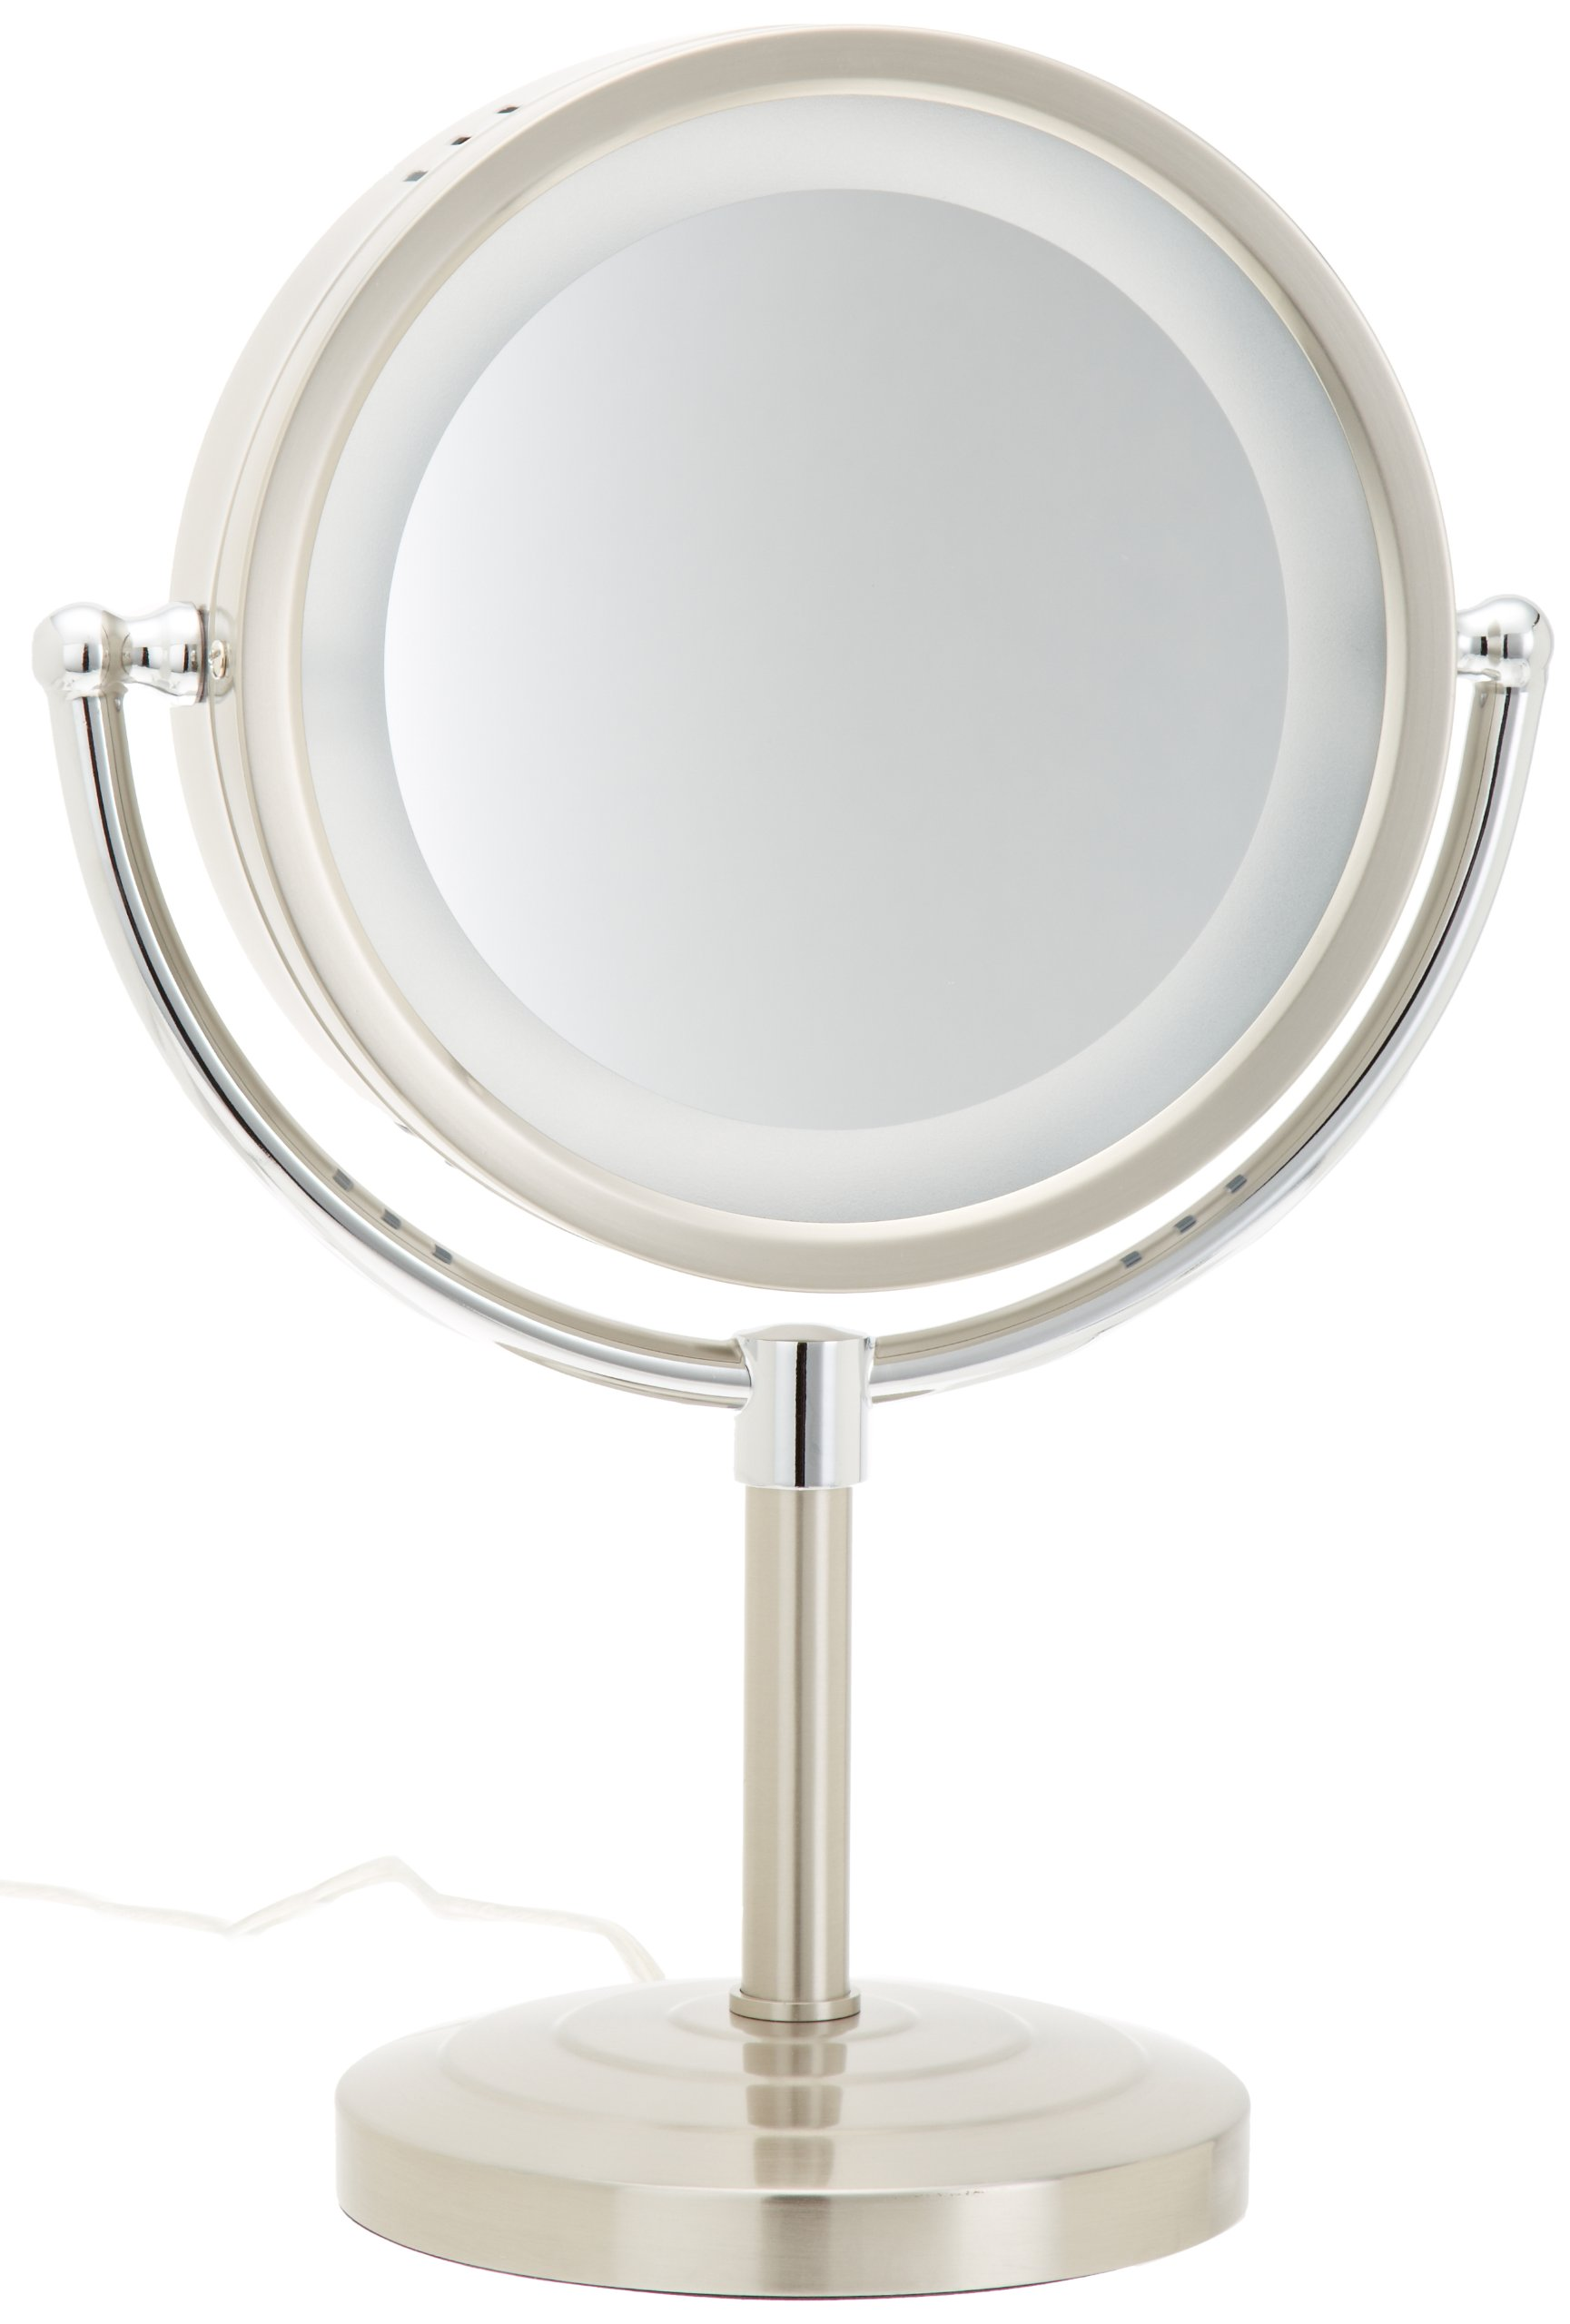 led tri tria lights fold lighted with products magnifying fancii illuminated trifold vanity co makeup light mirror